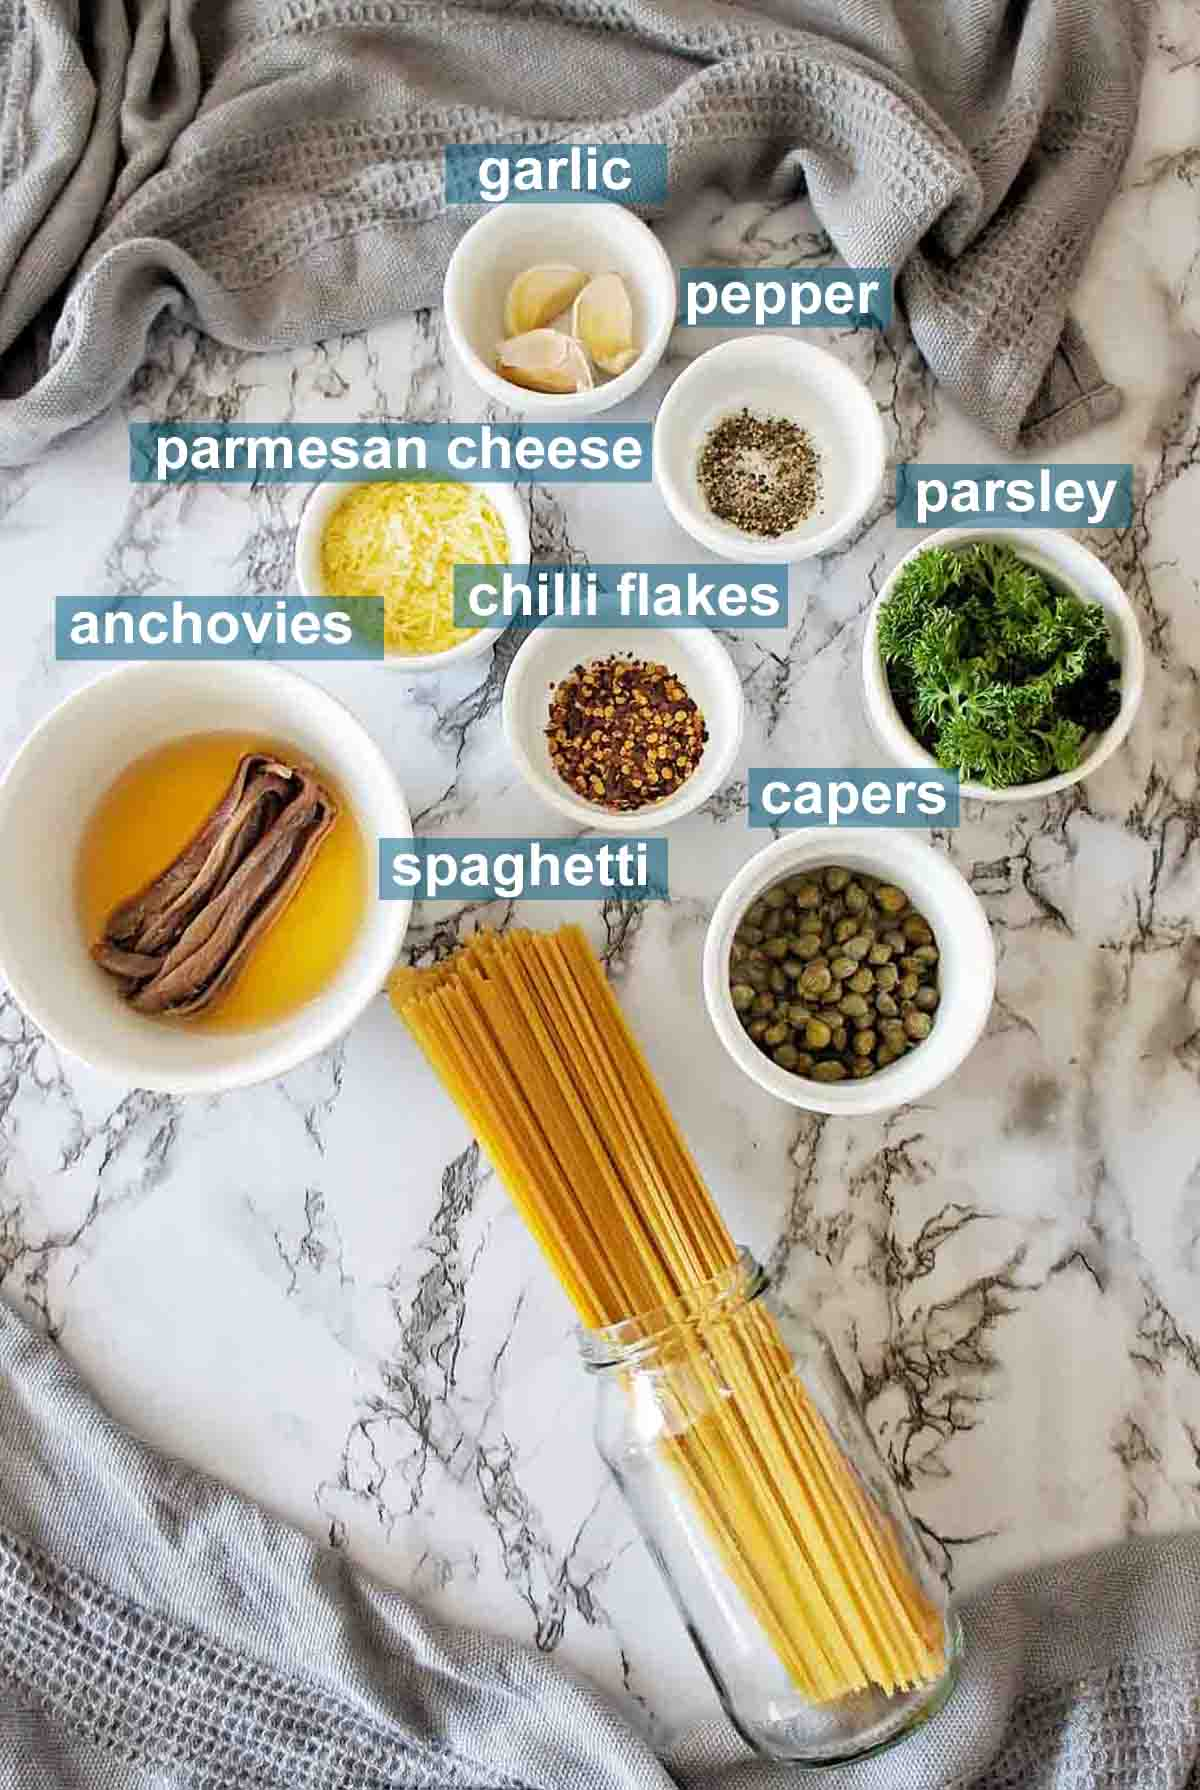 Ingredients for anchovy spaghetti on marble background with text over lay